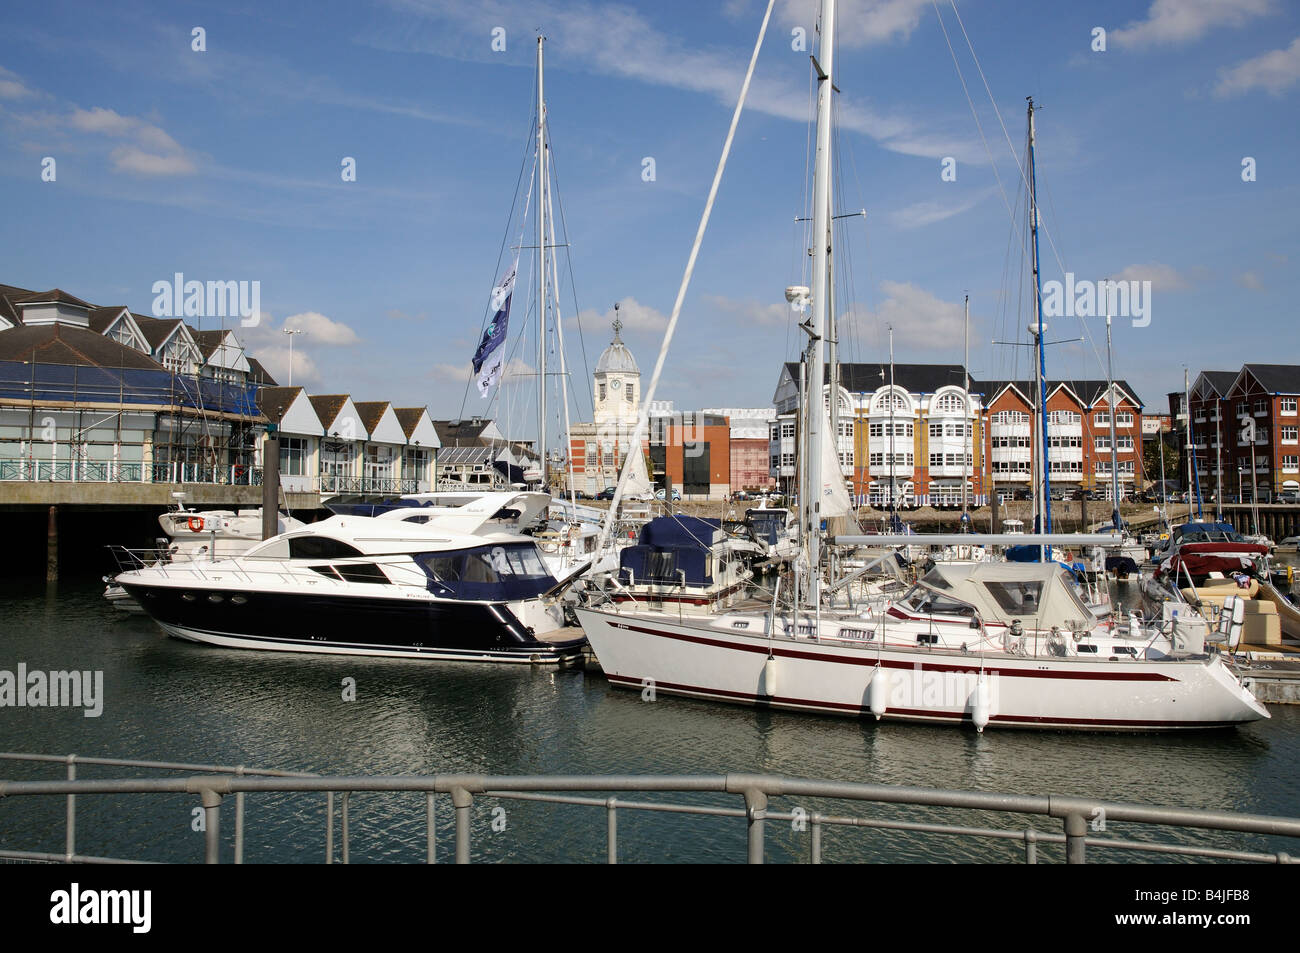 Town Quay Southampton England UK Waterfront development of housing boating marina - Stock Image